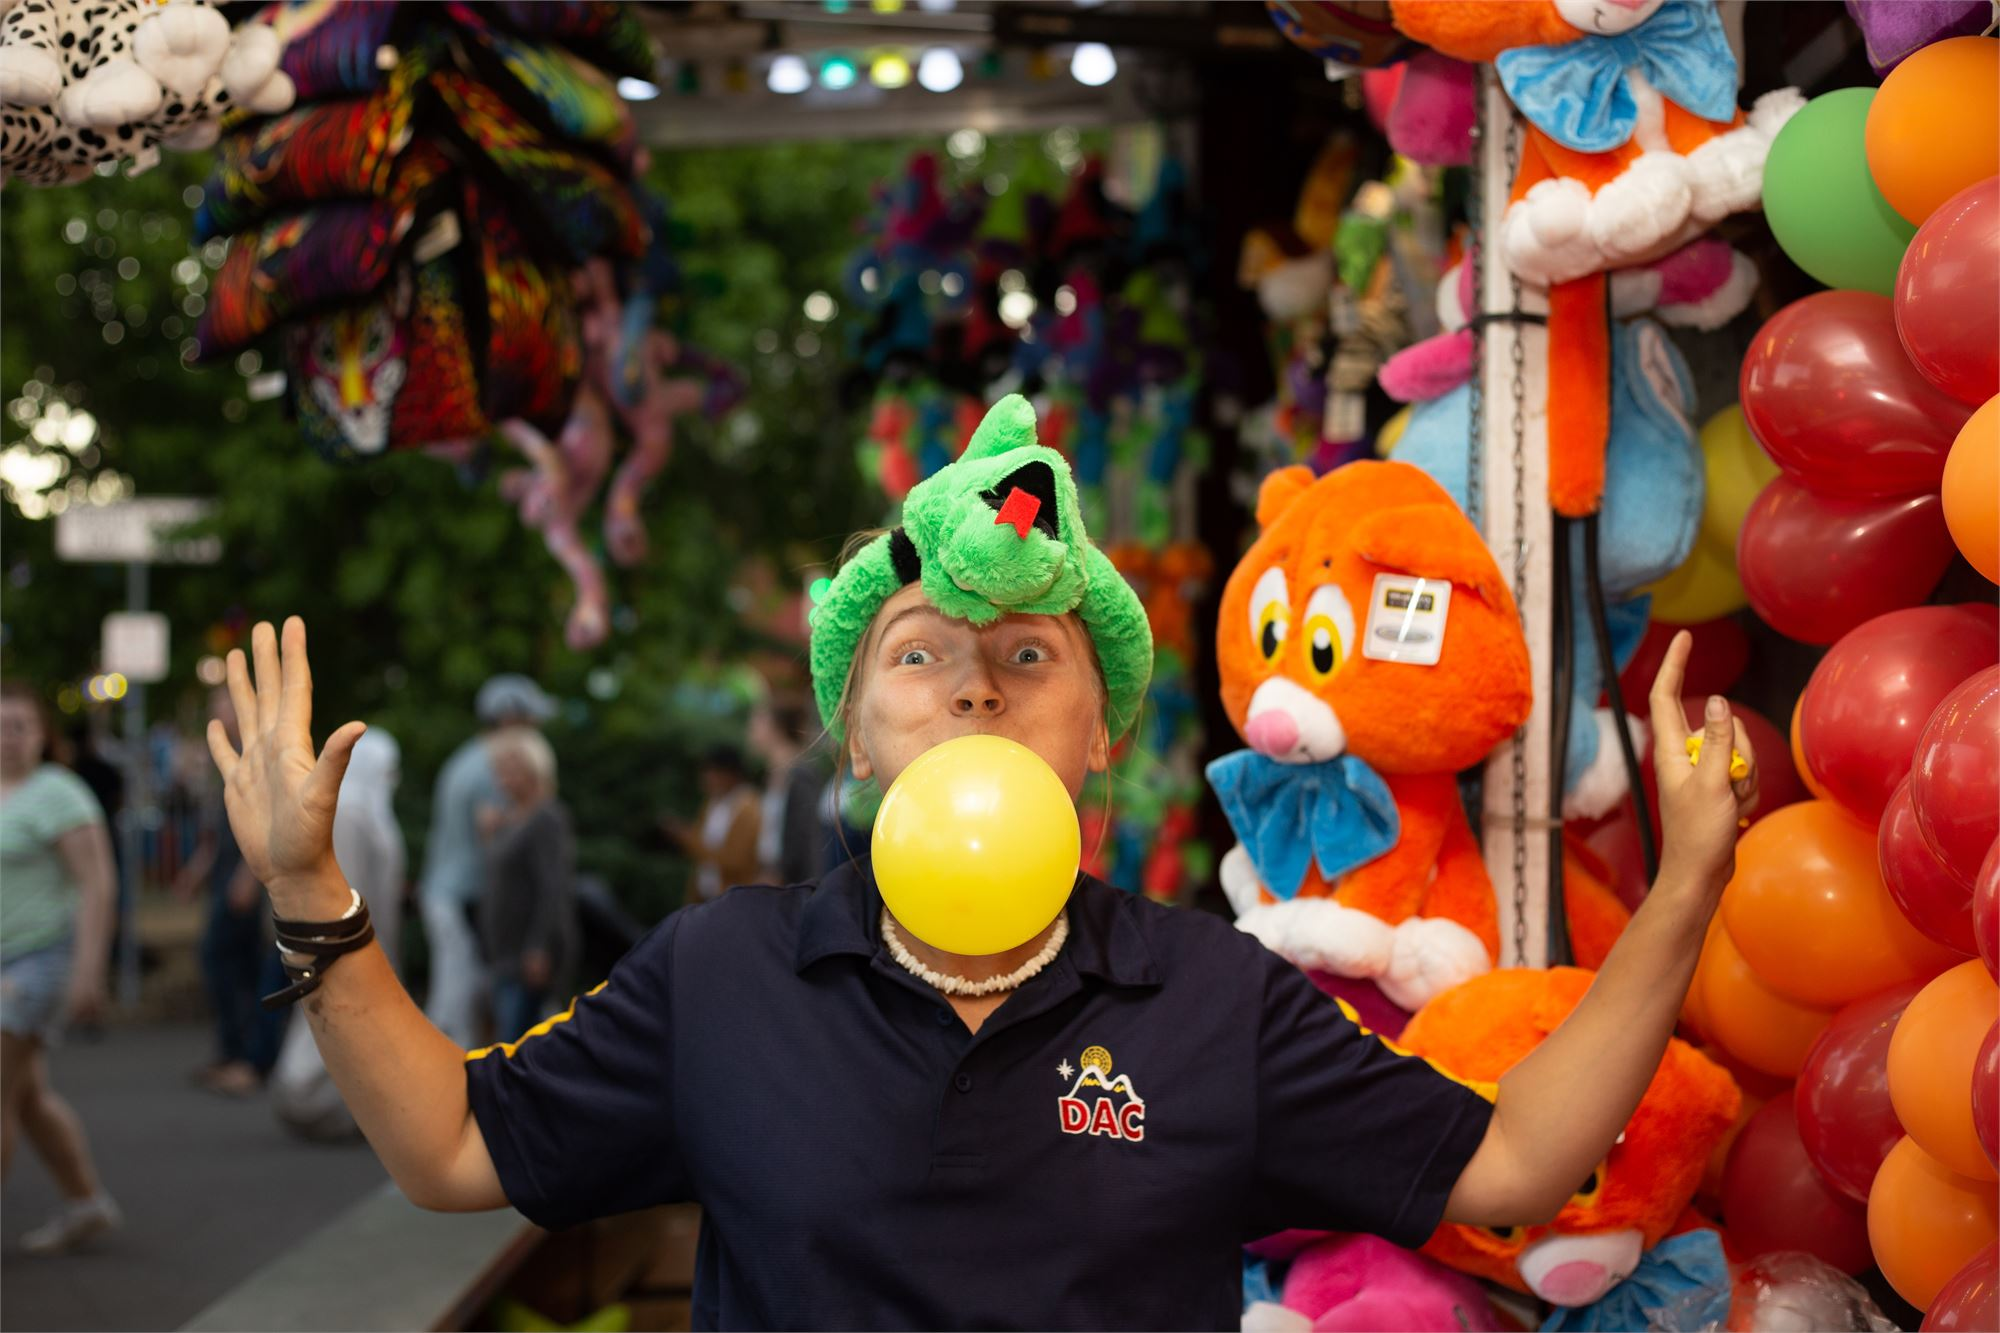 Carnival Worker at game booth having fun blowing up a balloon with no hands